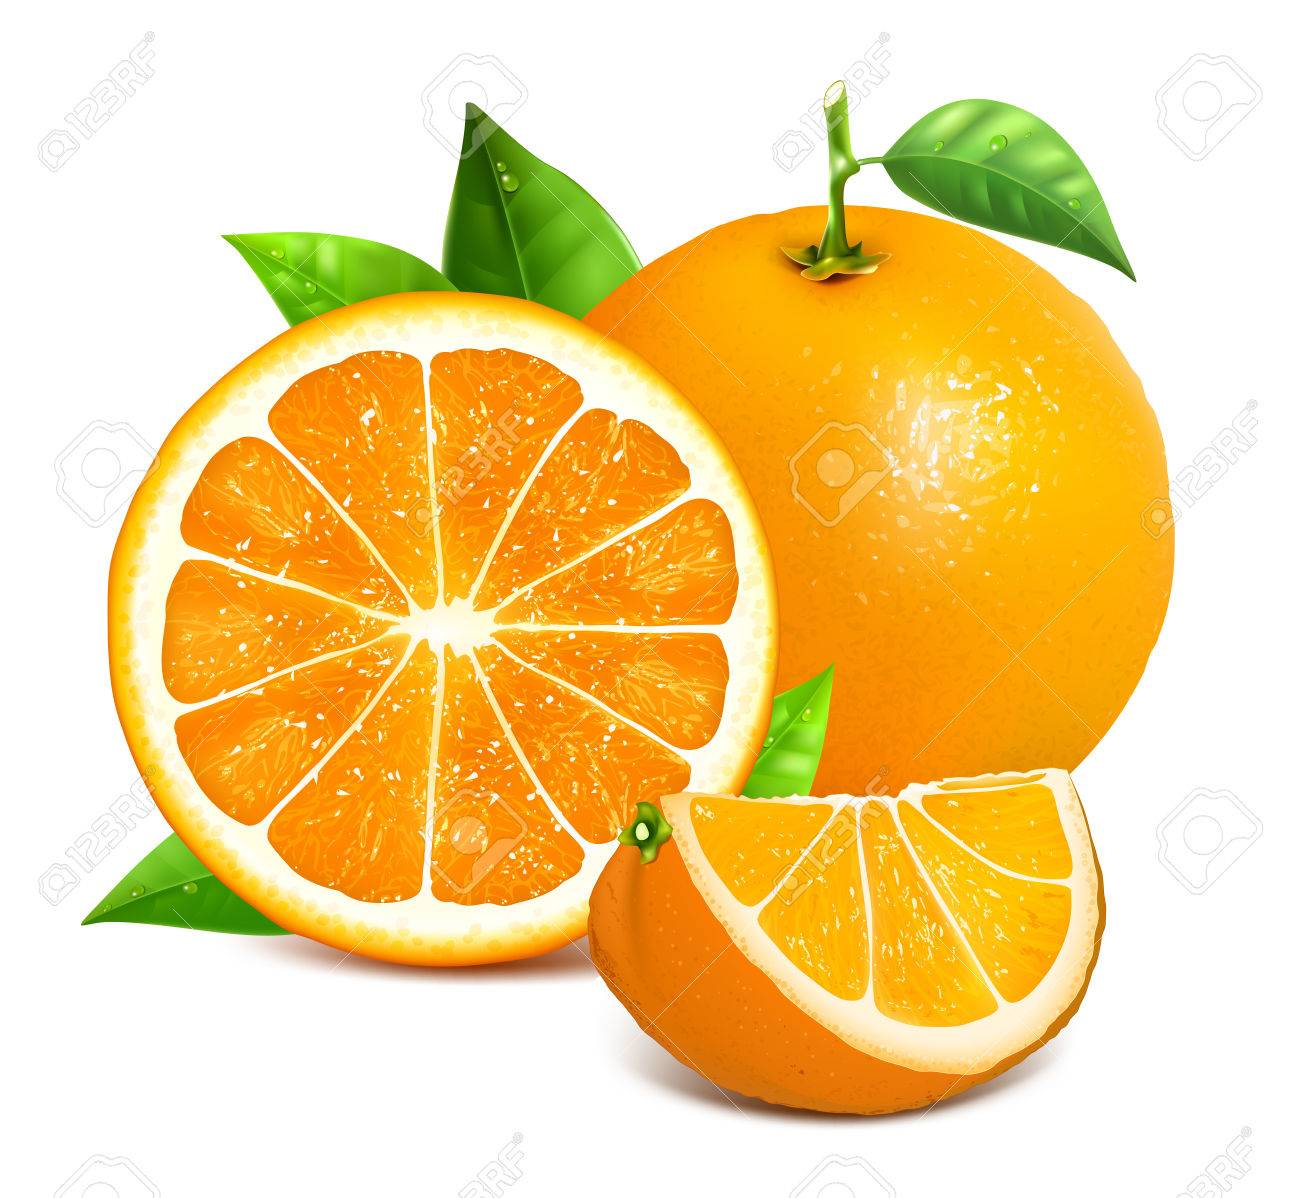 Orange whole and slices of oranges  Vector illustration of oranges